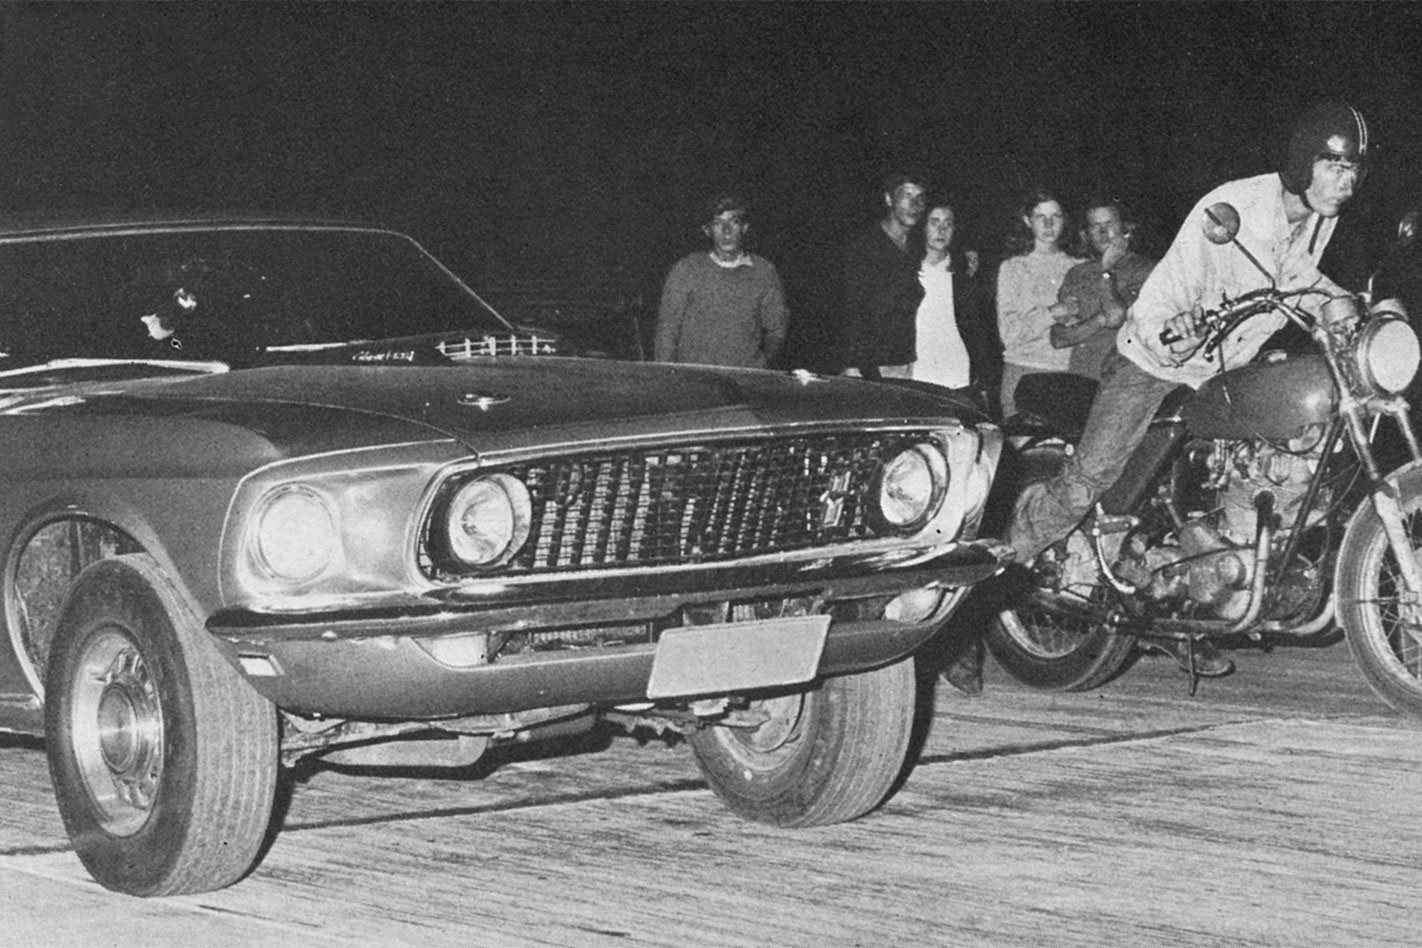 Archive: Brickies, the home of Australia's illegal street racing in the '70s